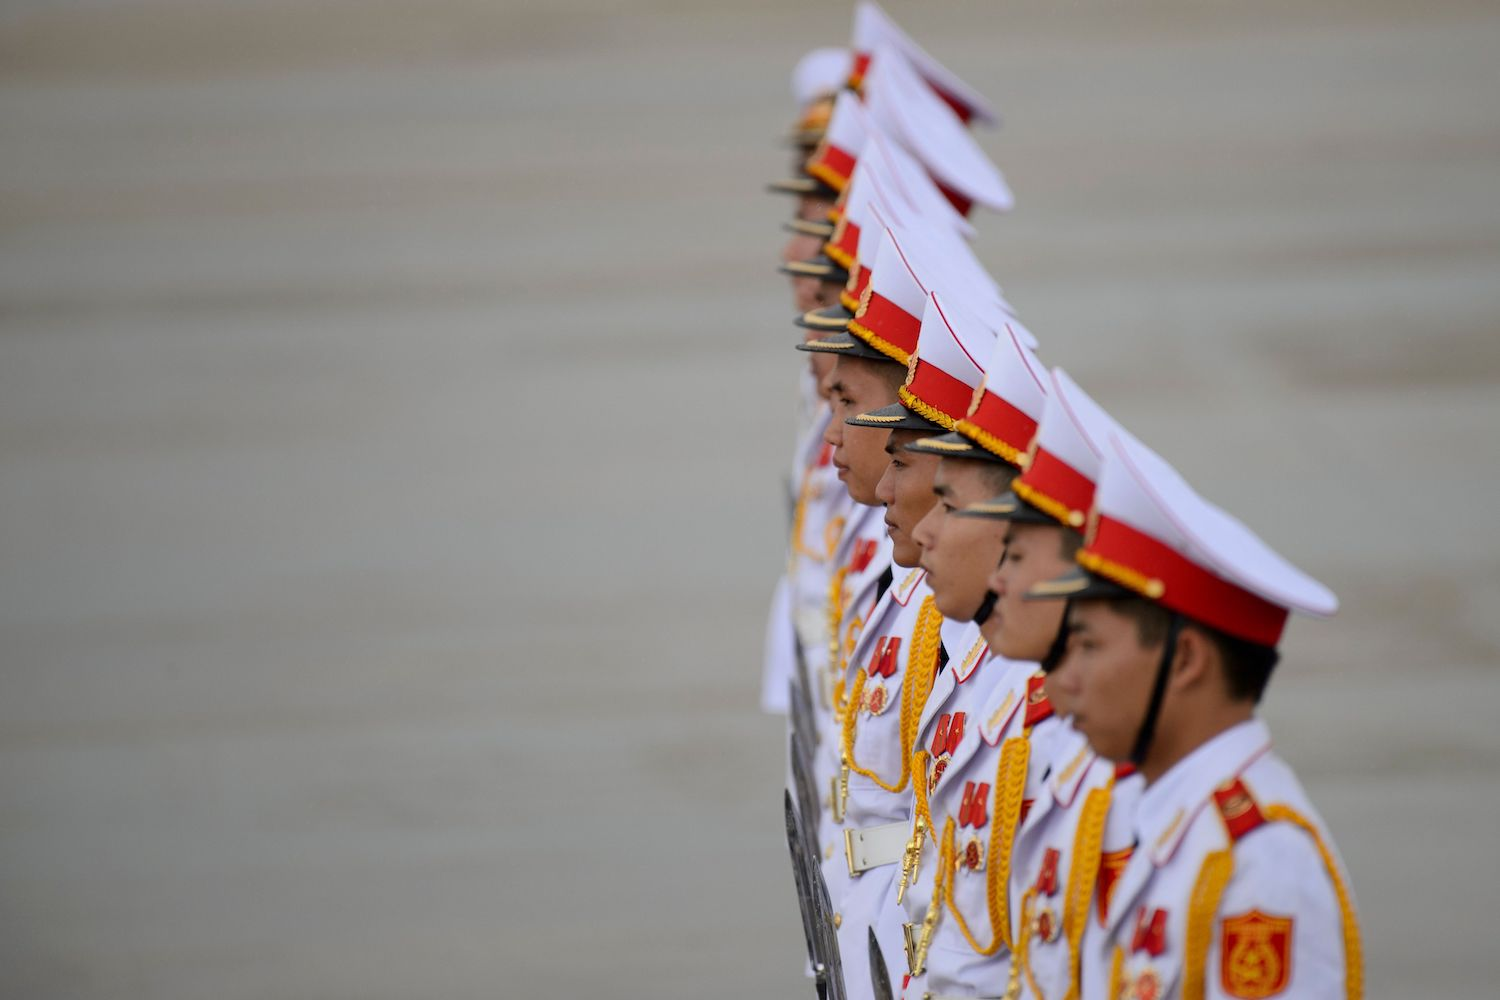 Members of a Vietnamese honor guard stand at attention during the arrivals of leaders at the international airport ahead of the Asia-Pacific Economic Cooperation (APEC) Summit in the central Vietnamese city of Danang on Nov. 9.Ye Aung Thu/AFP/Getty Images